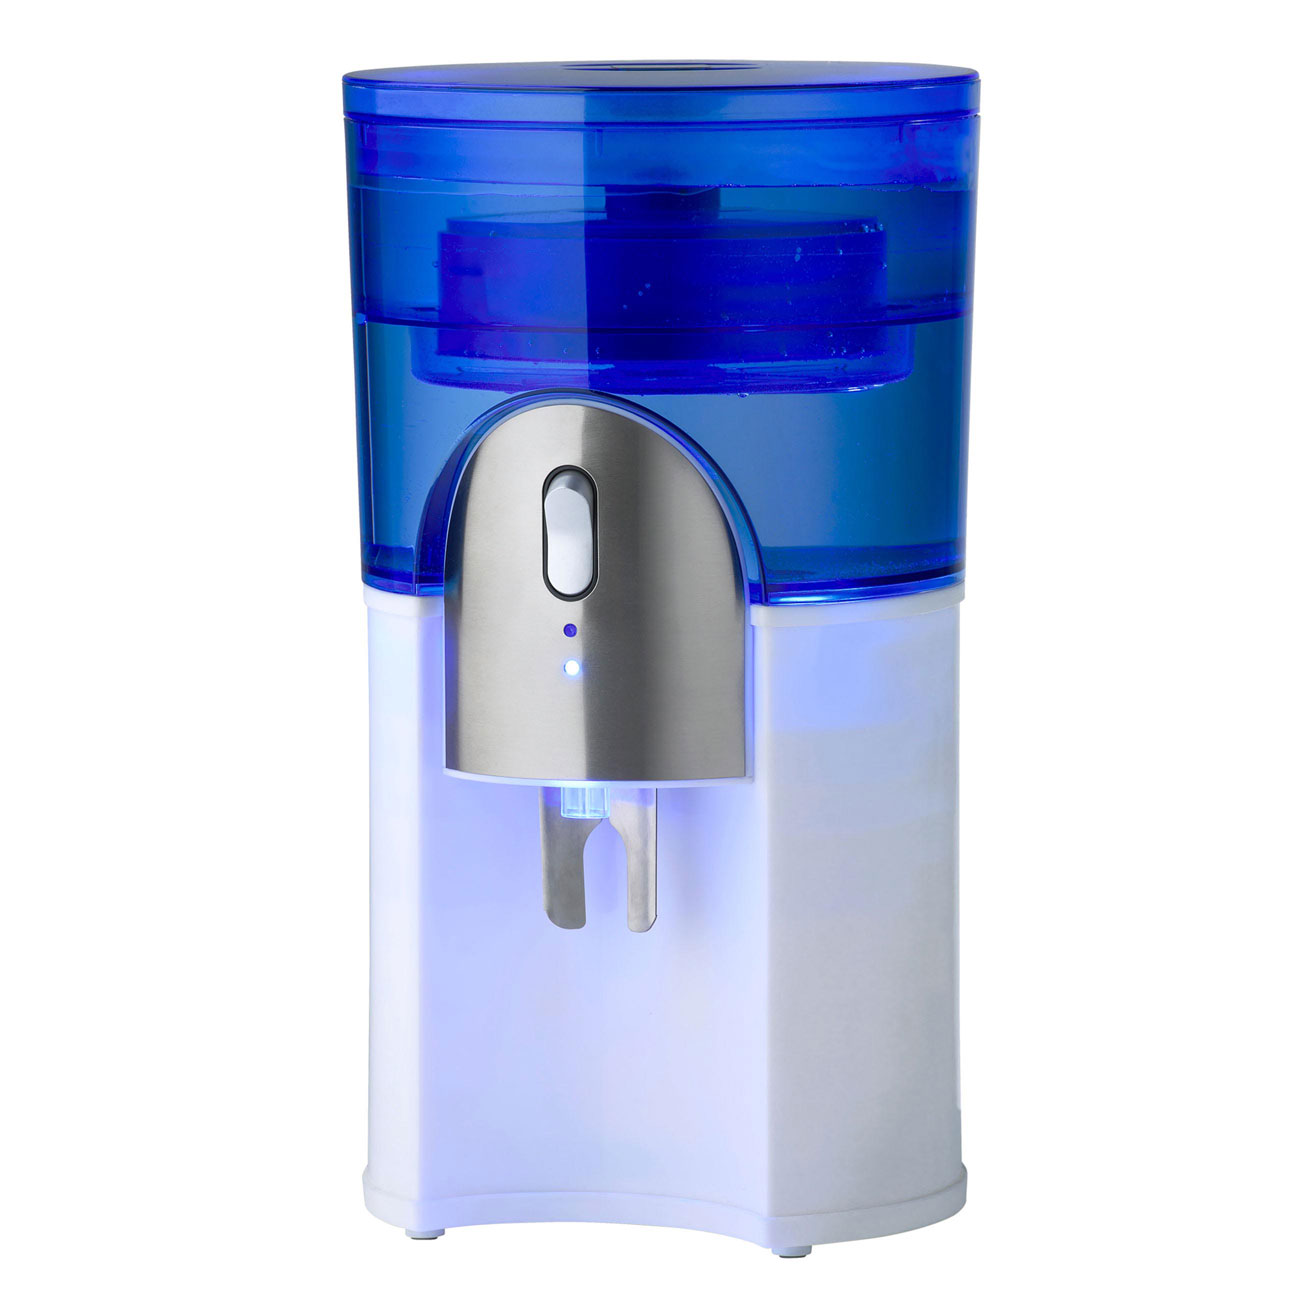 Desktop Water Cooler White